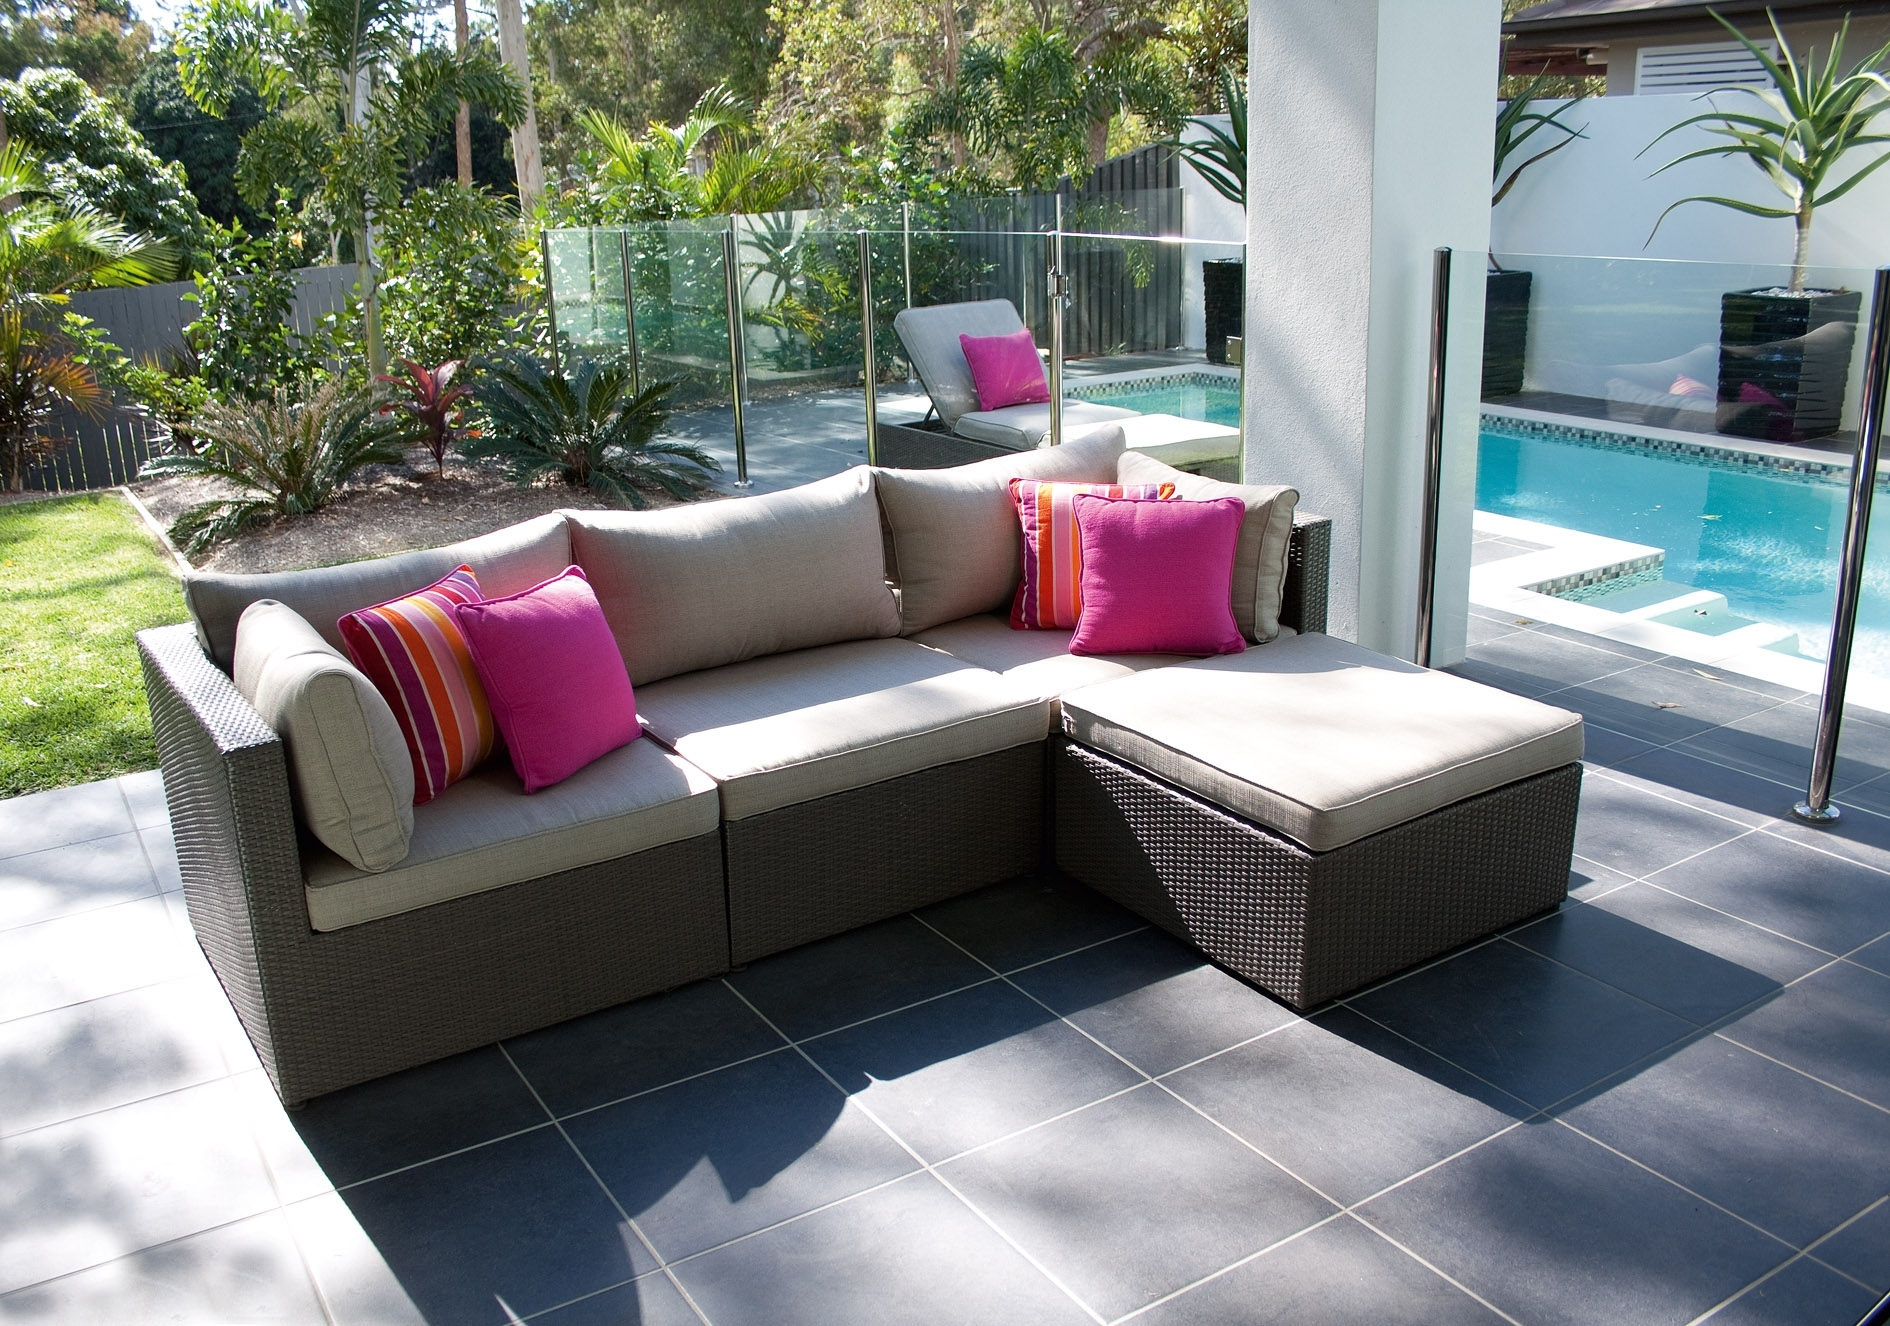 Outdoor Lounging Furniture Lounge Sets Rental Chicago Clearance With Outdoor Lounge Furniture Modern Outdoor Lounge Furniture Modern Design